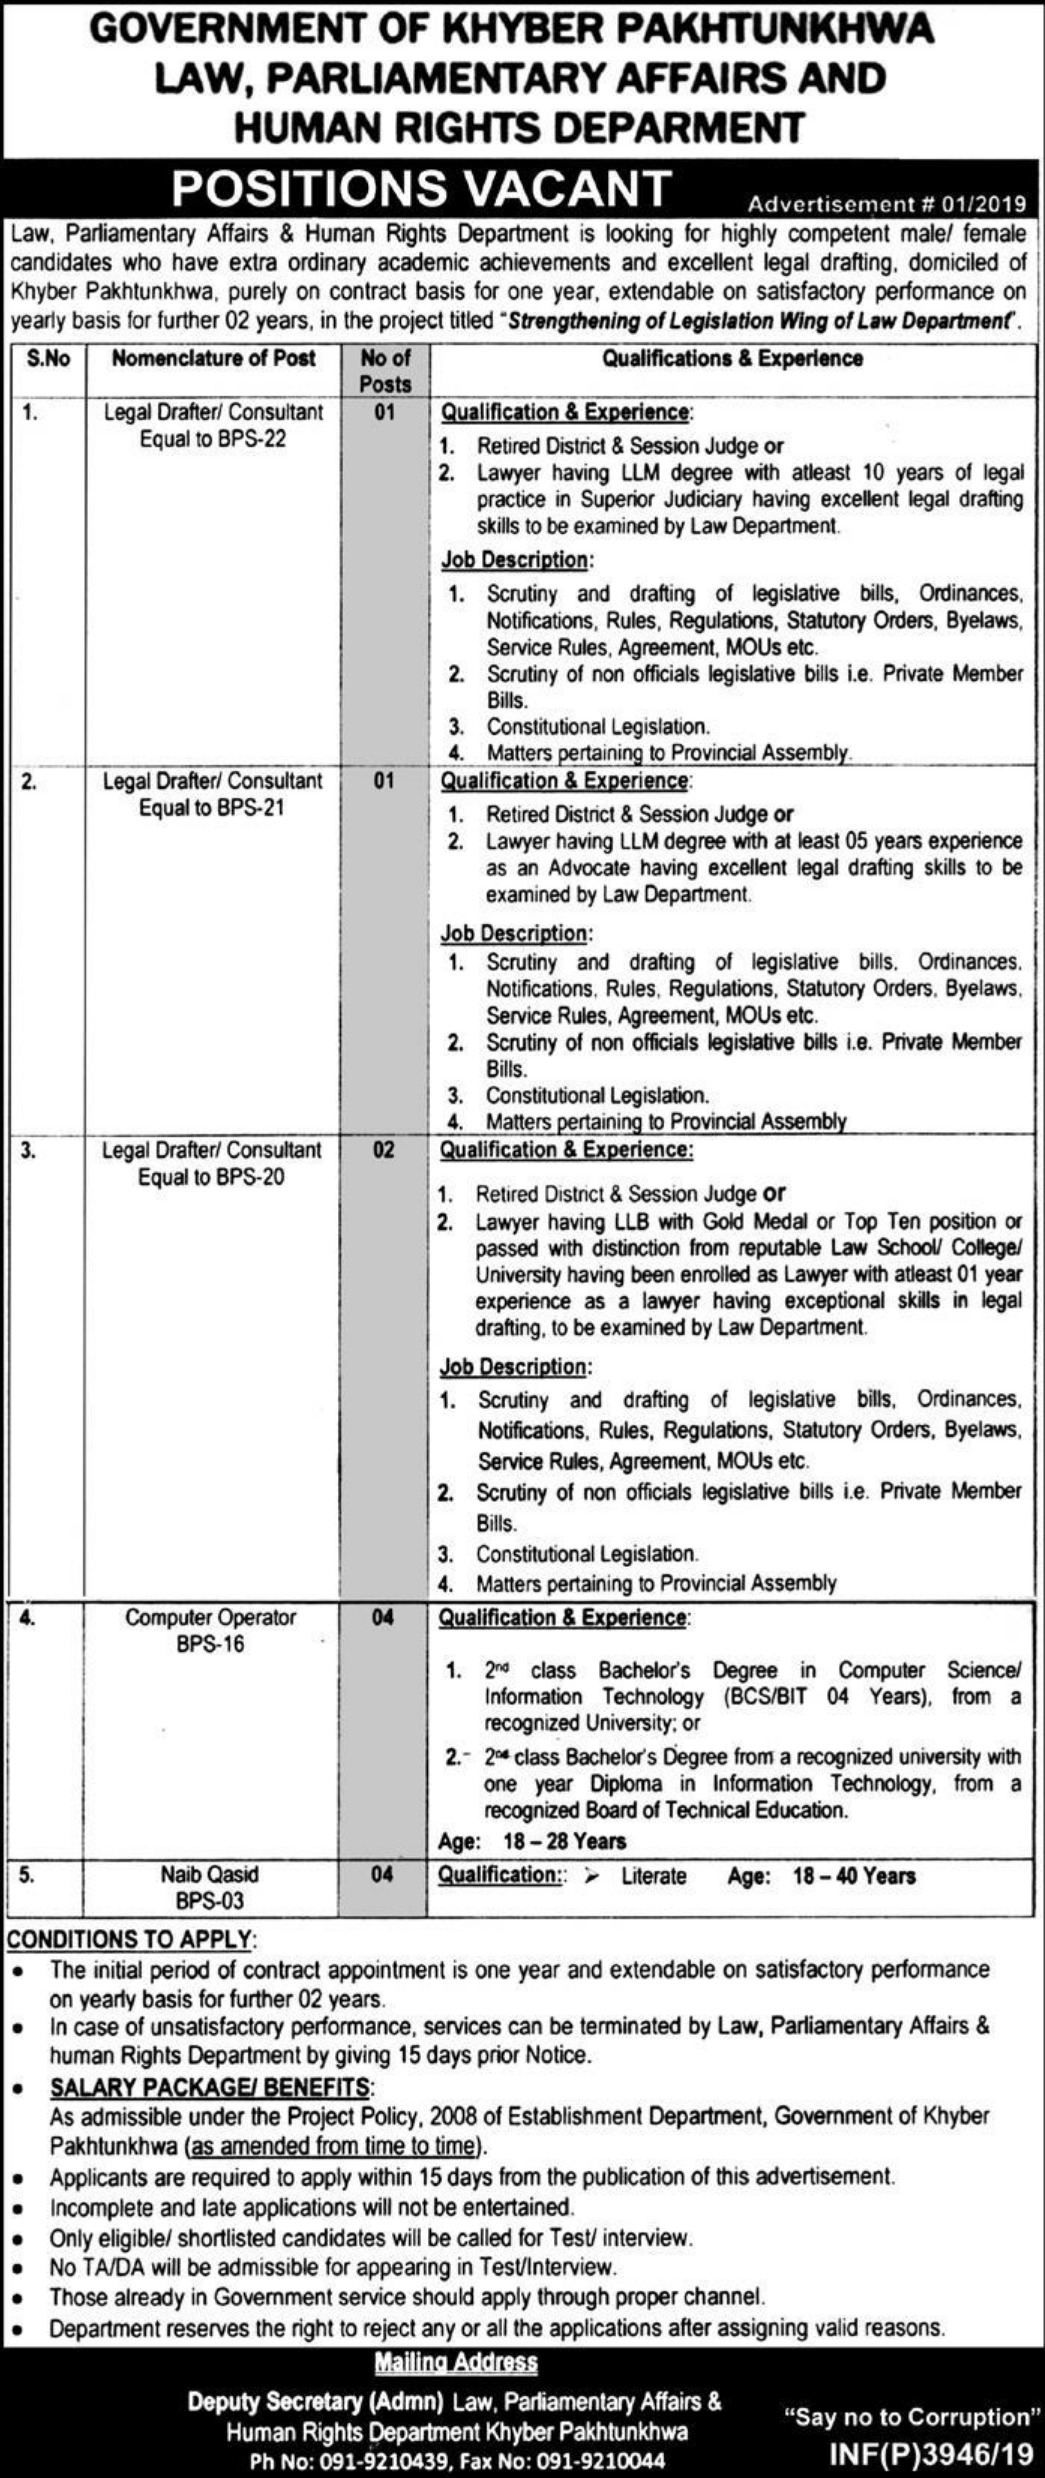 Khyber Pakhtunkhwa Law Parliamentary Affairs & Human Rights Department Jobs 2019